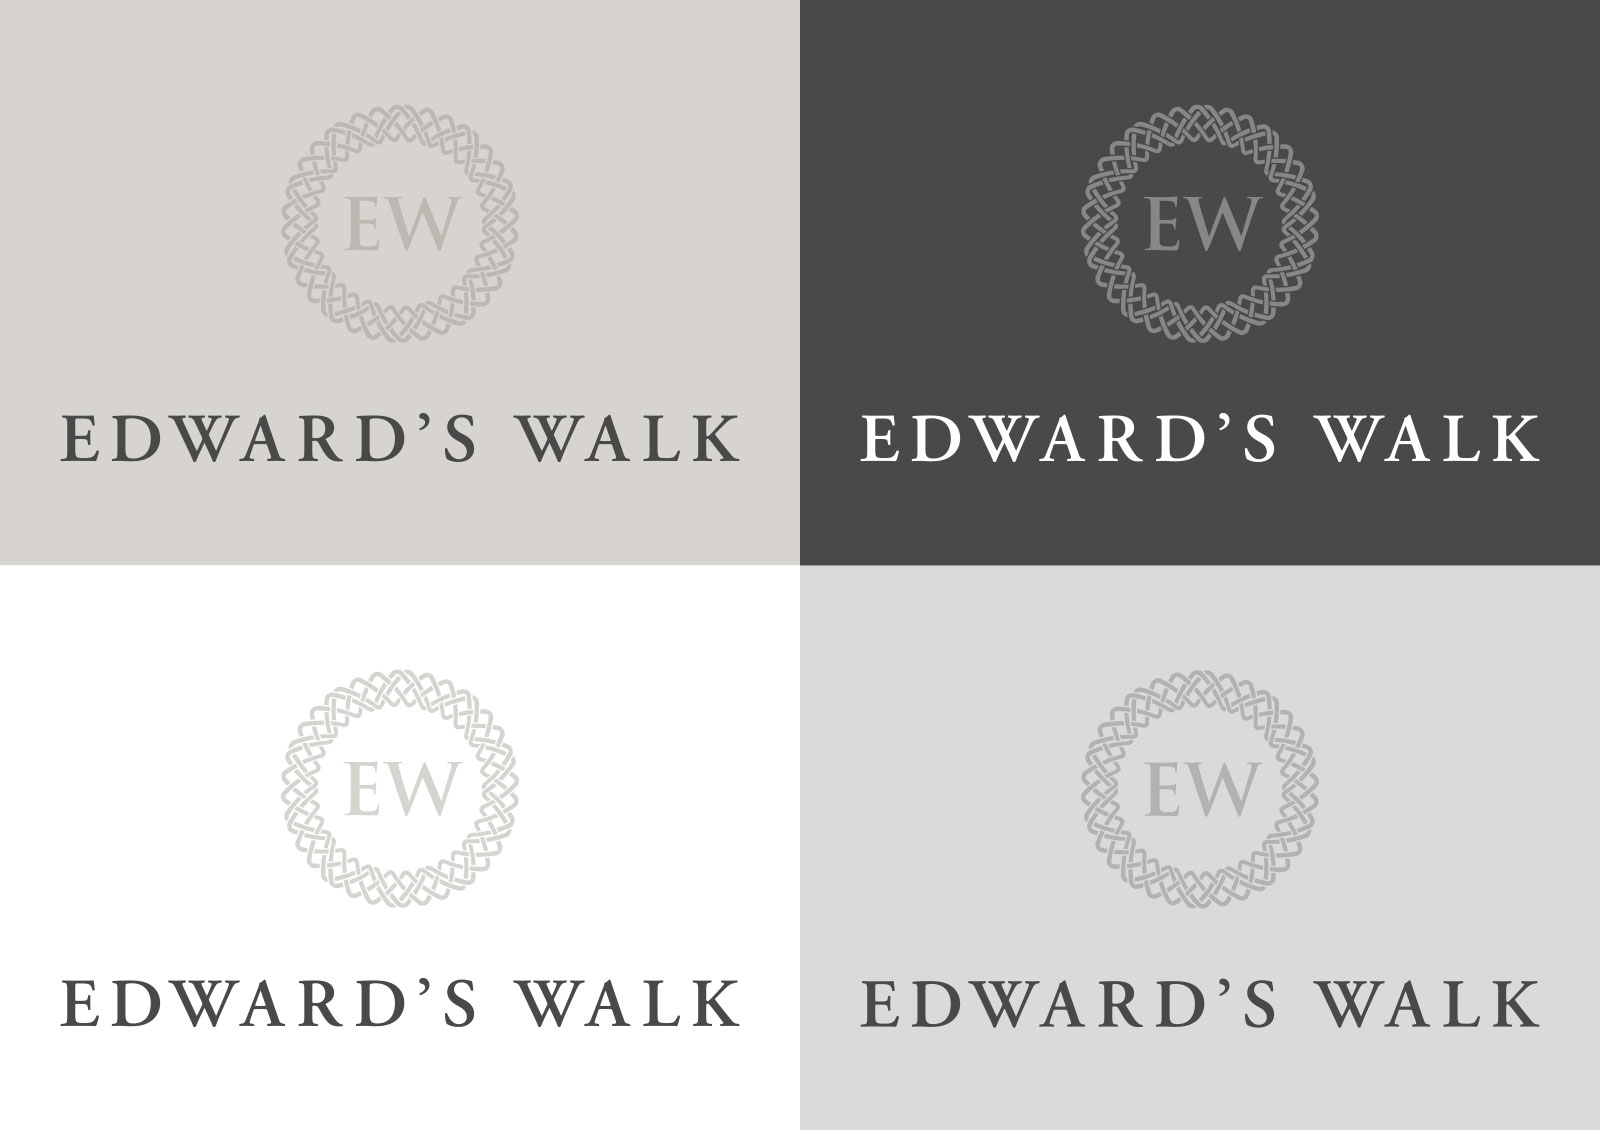 Edward's walk logo design